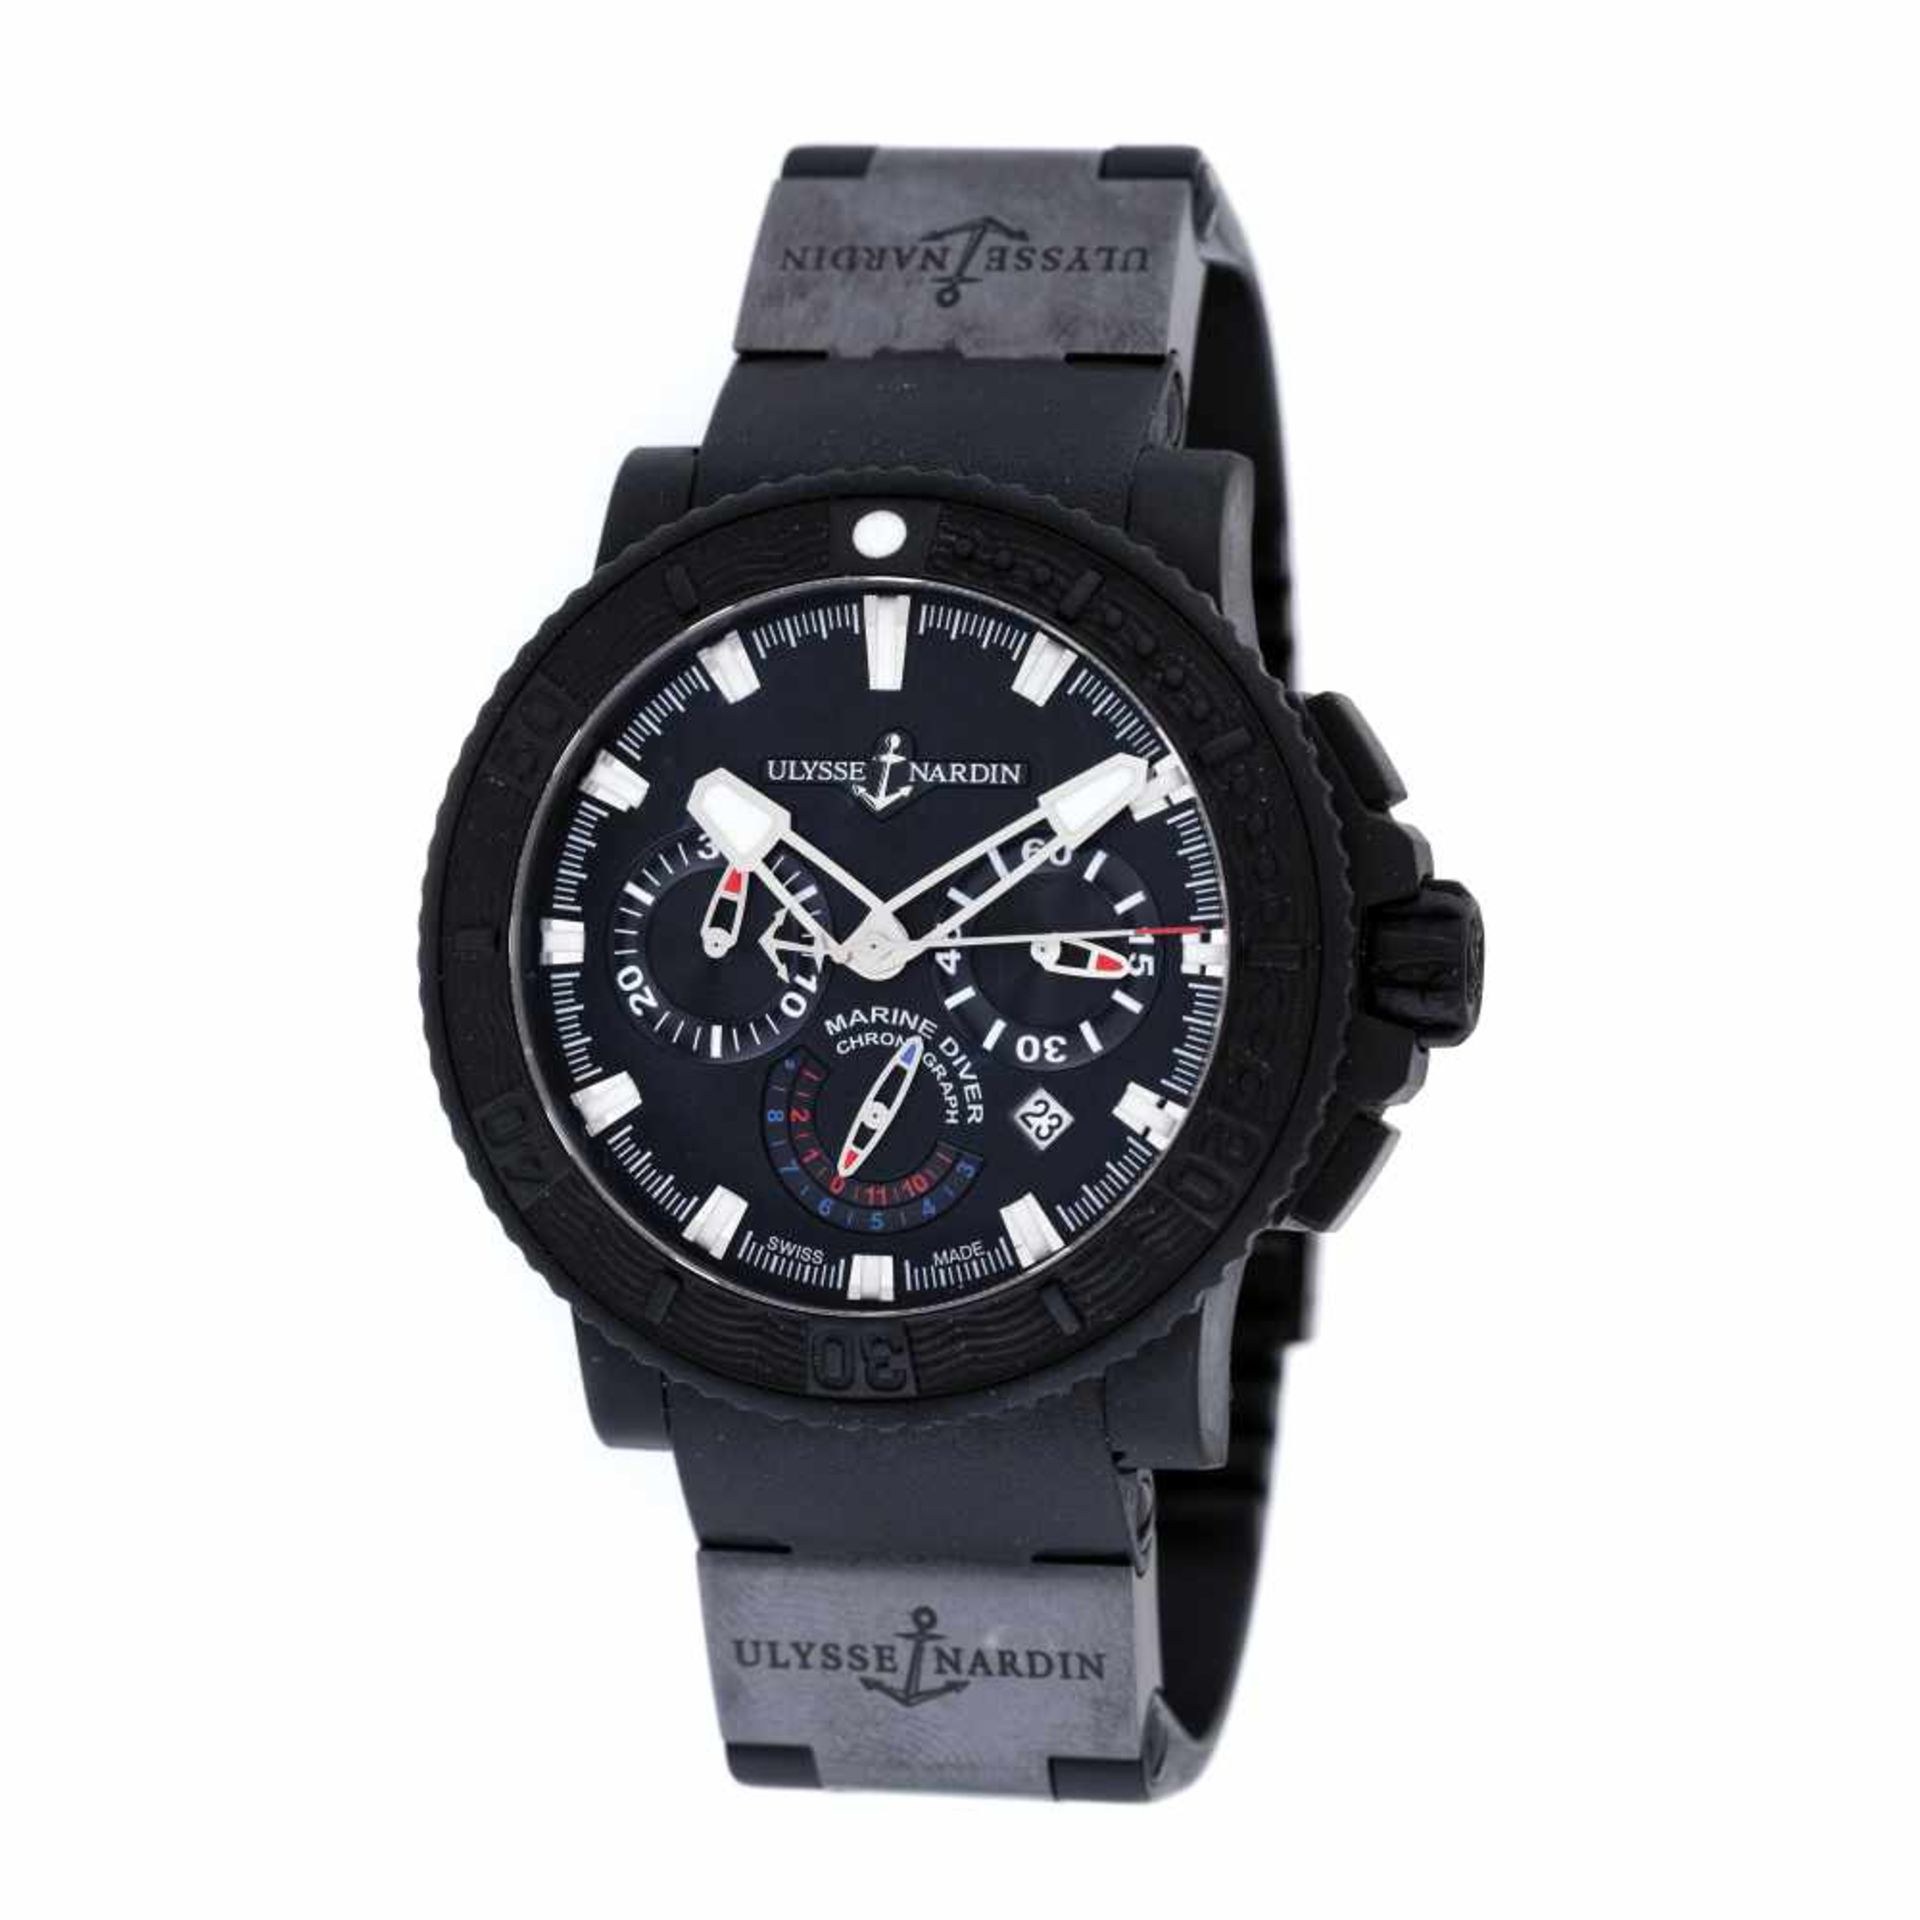 Ulysse Nardin Diver Marine Black Sea wristwatch, men, provenance documents